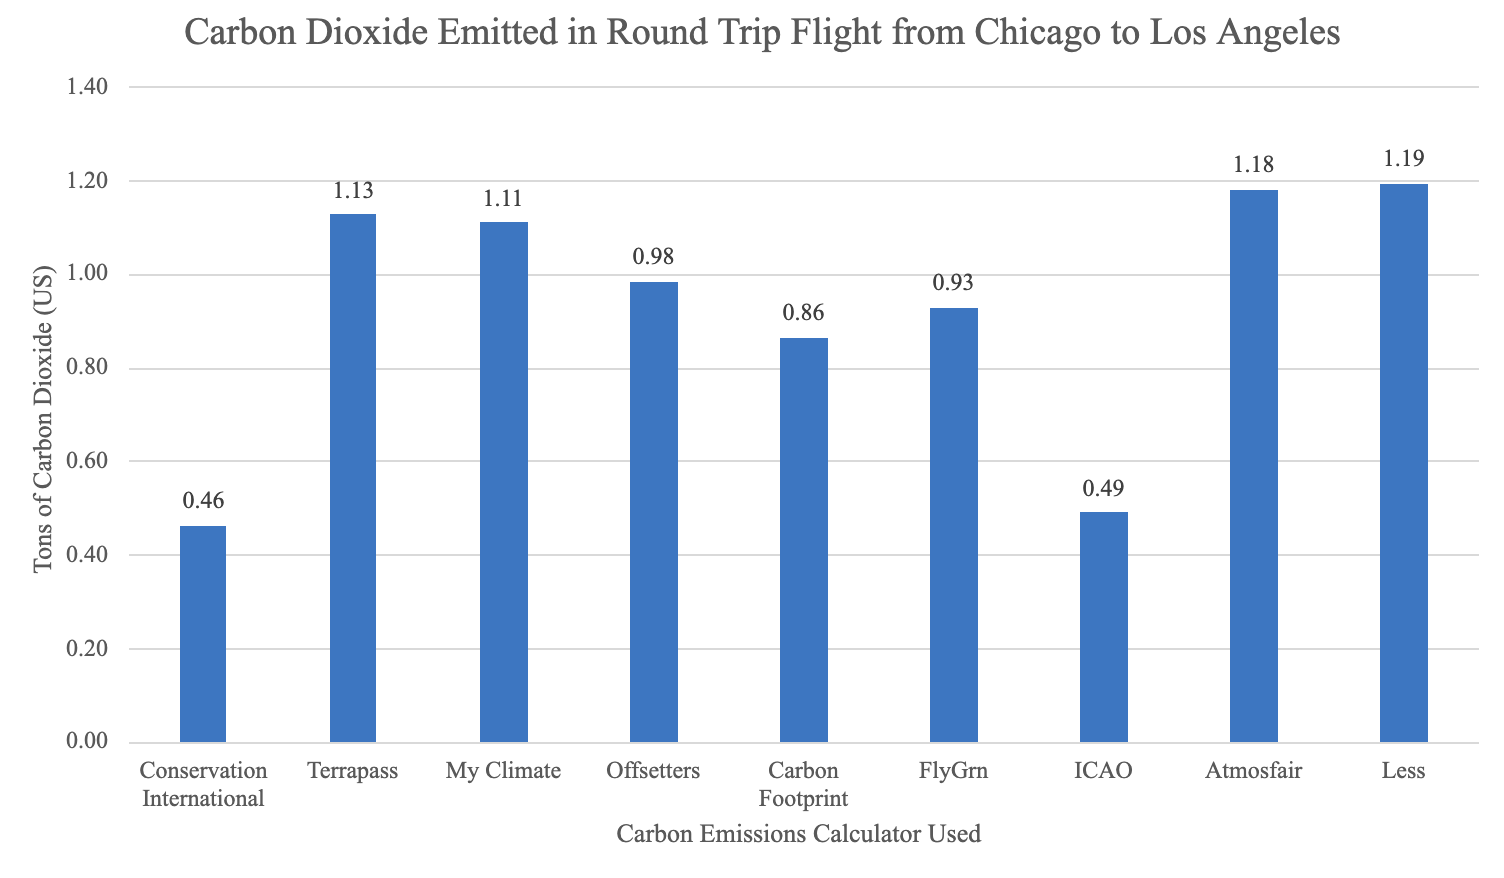 Bar grapg depicting the carbon dioxide emitted in a round trip flight from Chicago to Los Angeles according to 9 different calculators,